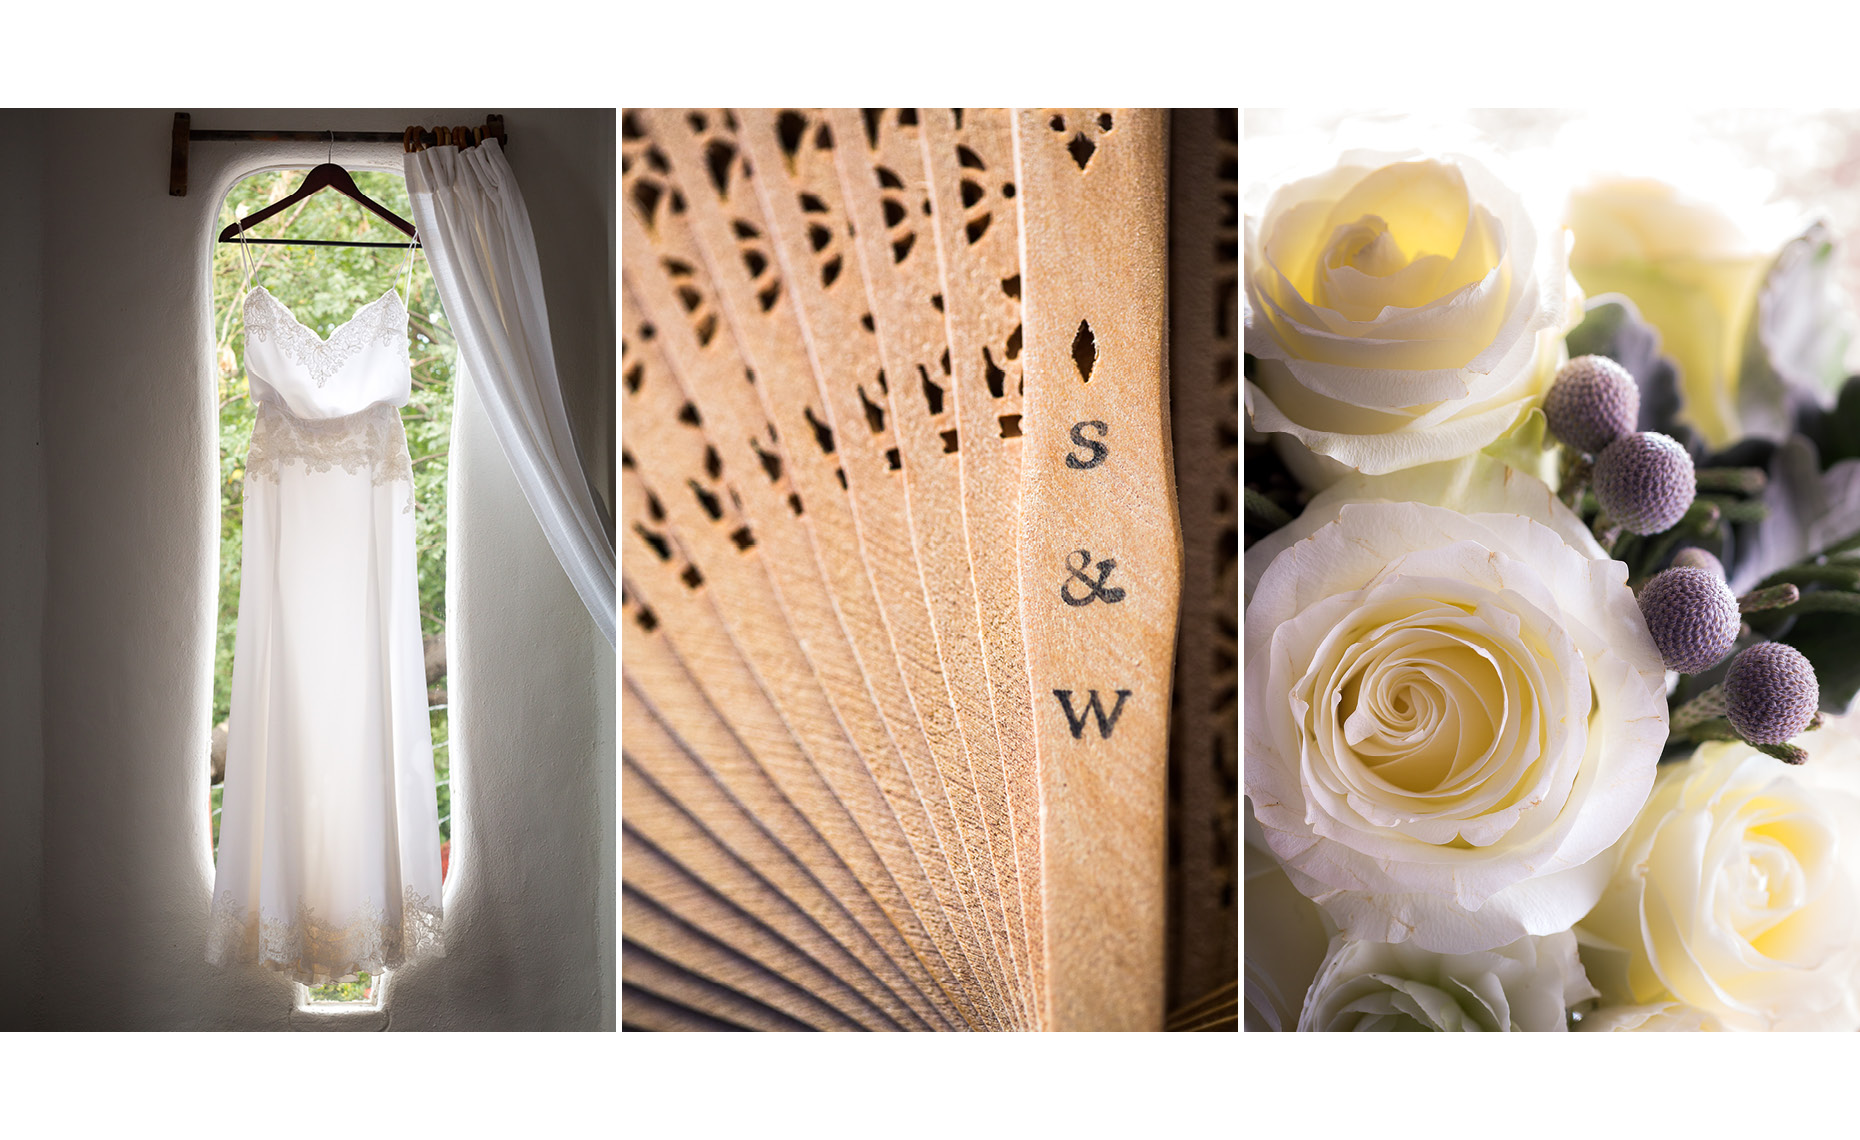 Destination wedding photographer from whistler shoots closeup details